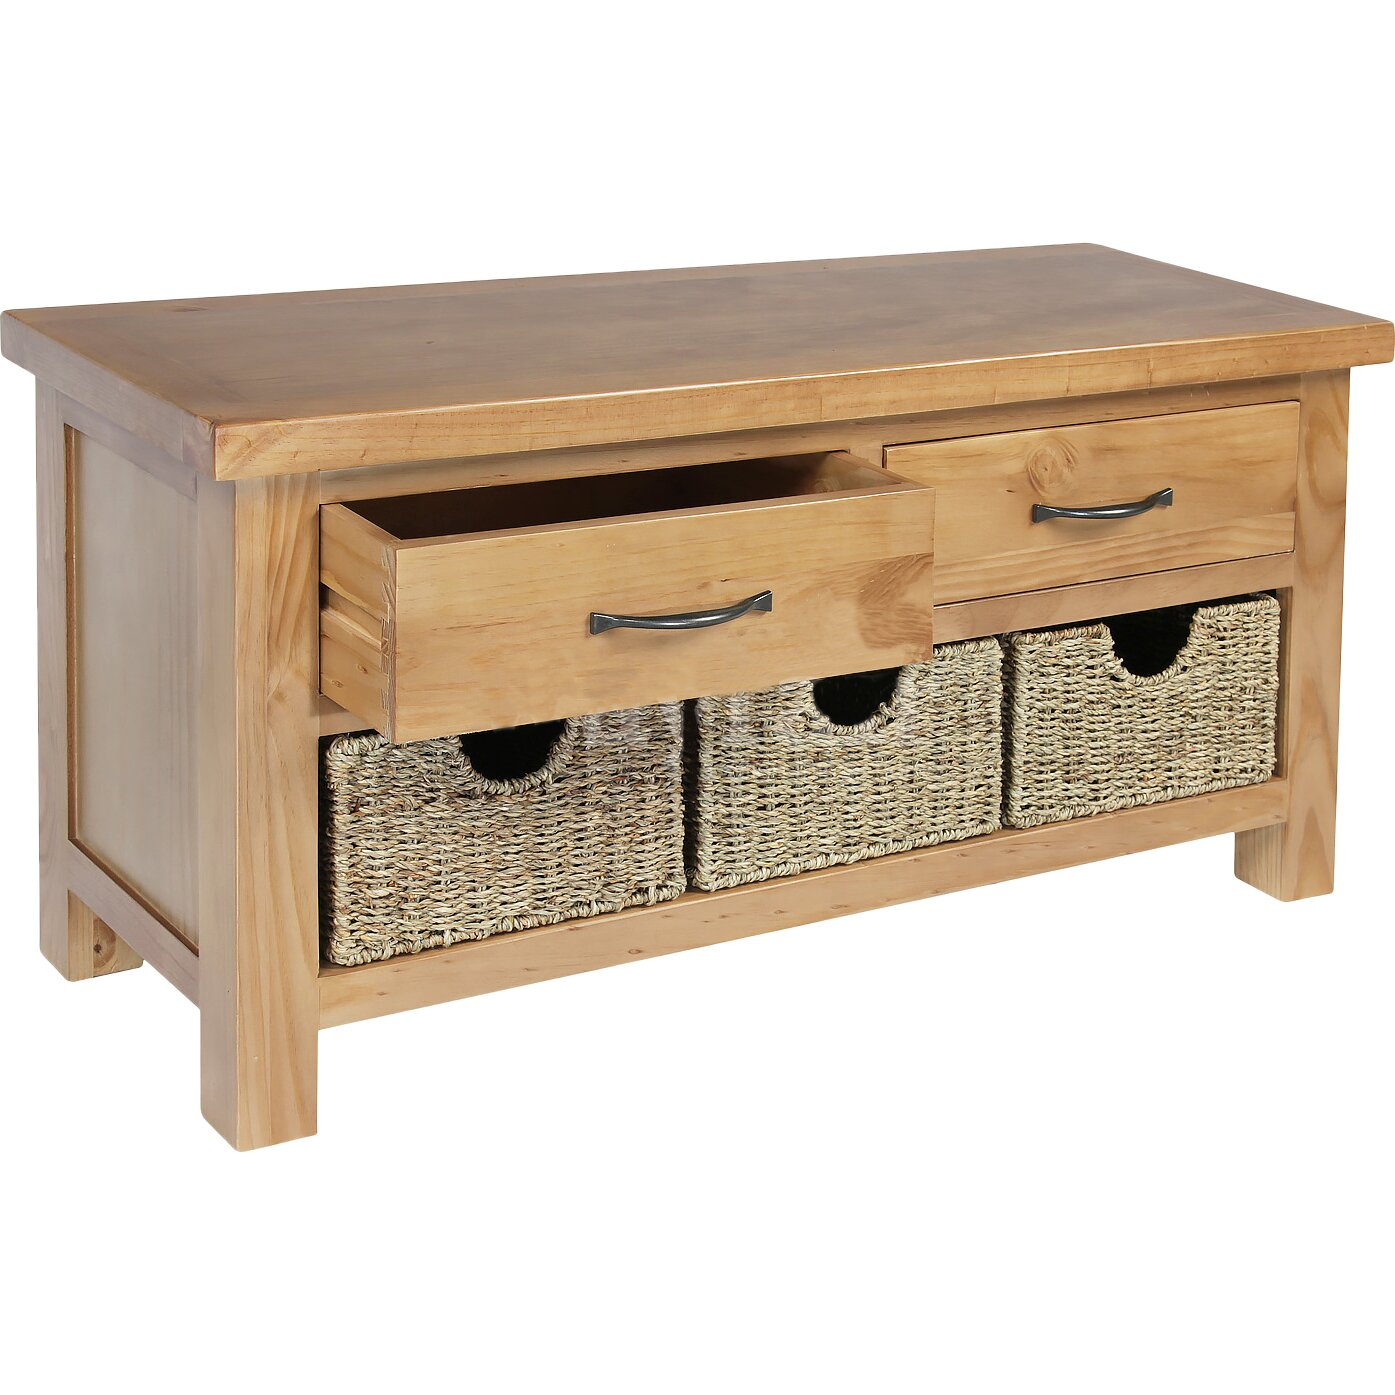 Homestead Living South Hero 2 Drawer Chest Reviews